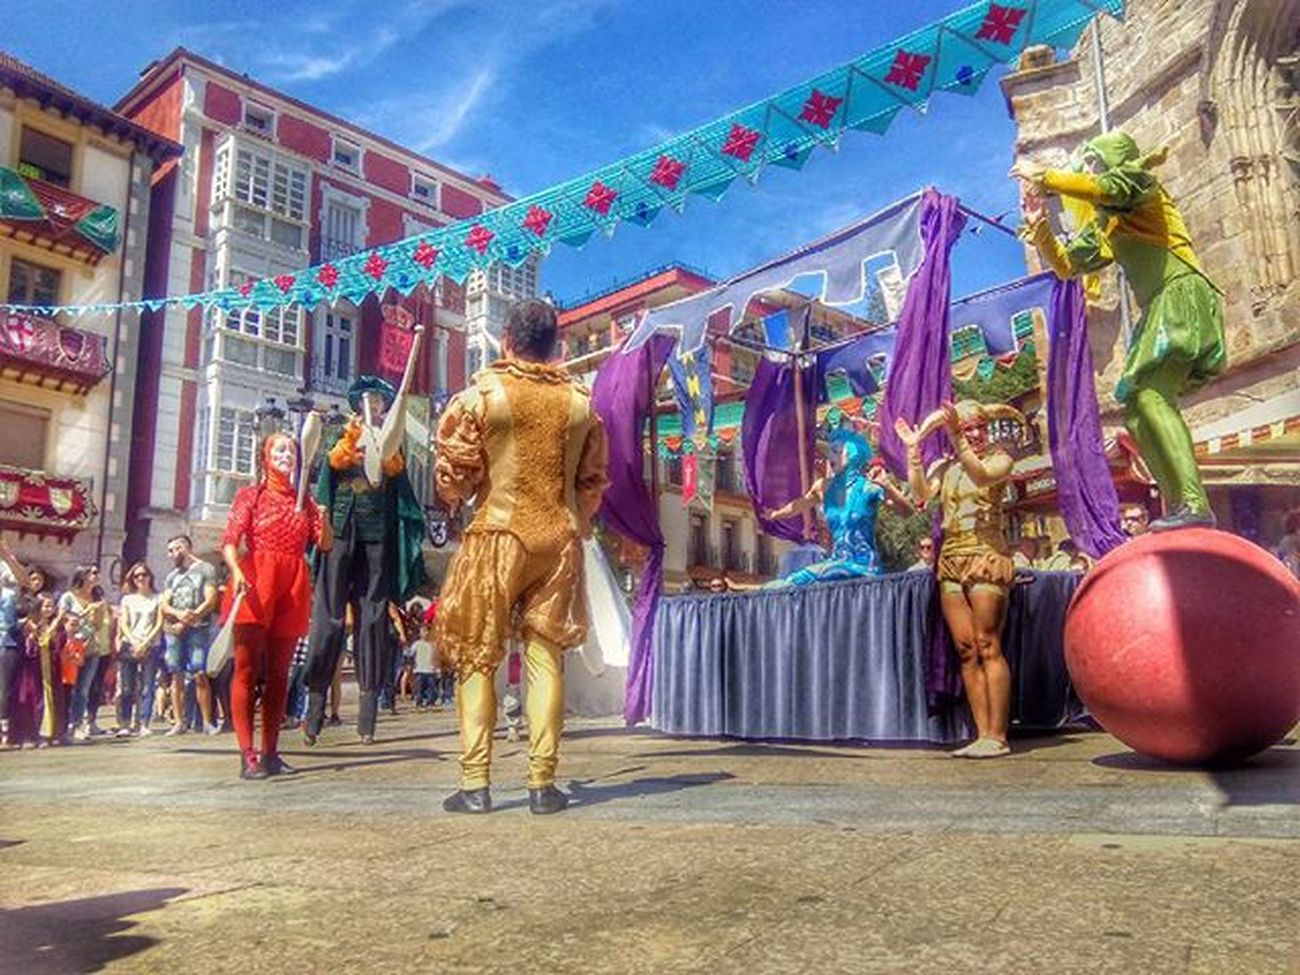 Animacion callejera.... OpenEdit Streamzoofamily Everybodystreet ⚪〰⚪〰⚪〰⚪〰⚪〰⚪〰〰⚪〰⚪〰⚪〰⚪〰⚪〰⚪ Fotofanatics_hdr Total_shot Loves_cultures Love_hdr_colour Total_hdr Ok_streets Ok_hdr Top_hdr_photo Todoclick World_besthdr Kings_hdr Tv_hdr Lucky_hdr Stars_hdr Hdr_stop Hdr_professional Igw_hdr Best_expression_hdr Infinity_hdr Ilove_hdr ✴🔹✴🔹✴🔹✴🔹✴🔹✴🔹✴🔹✴🔹✴🔹✴🔹✴🔹✴🔹✴🔹✴🔹✴ Gracias a mis seguidores @photodviles79 . Mis imagenes tambien visibles en las etiquetas Daivison79 y Dacphoto2016